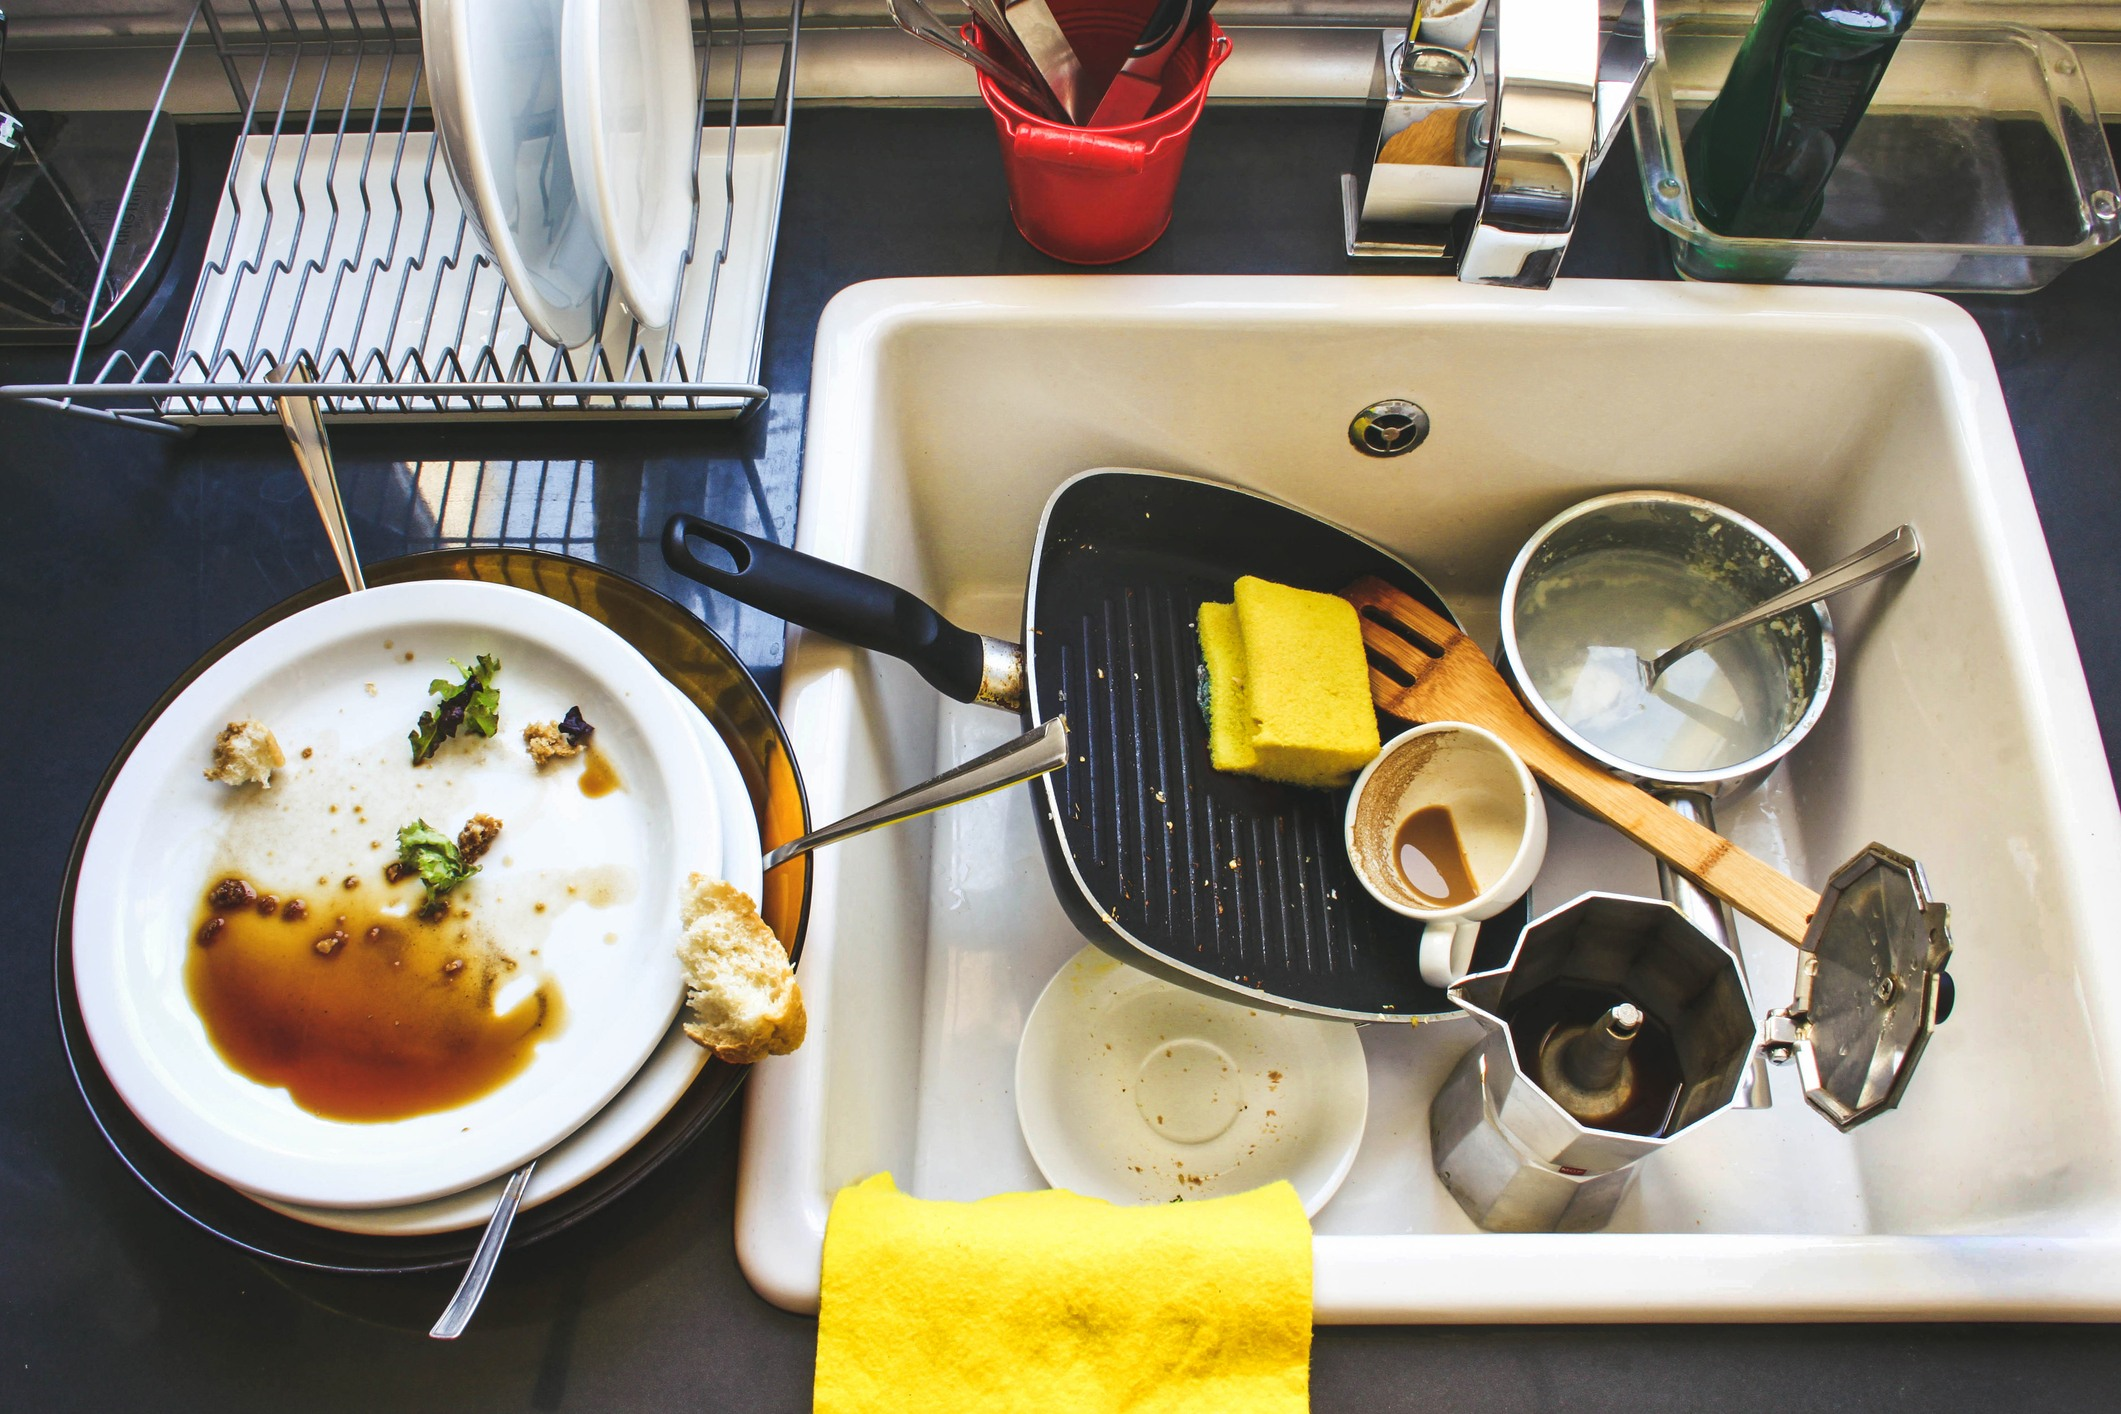 Dirty dishes in sink